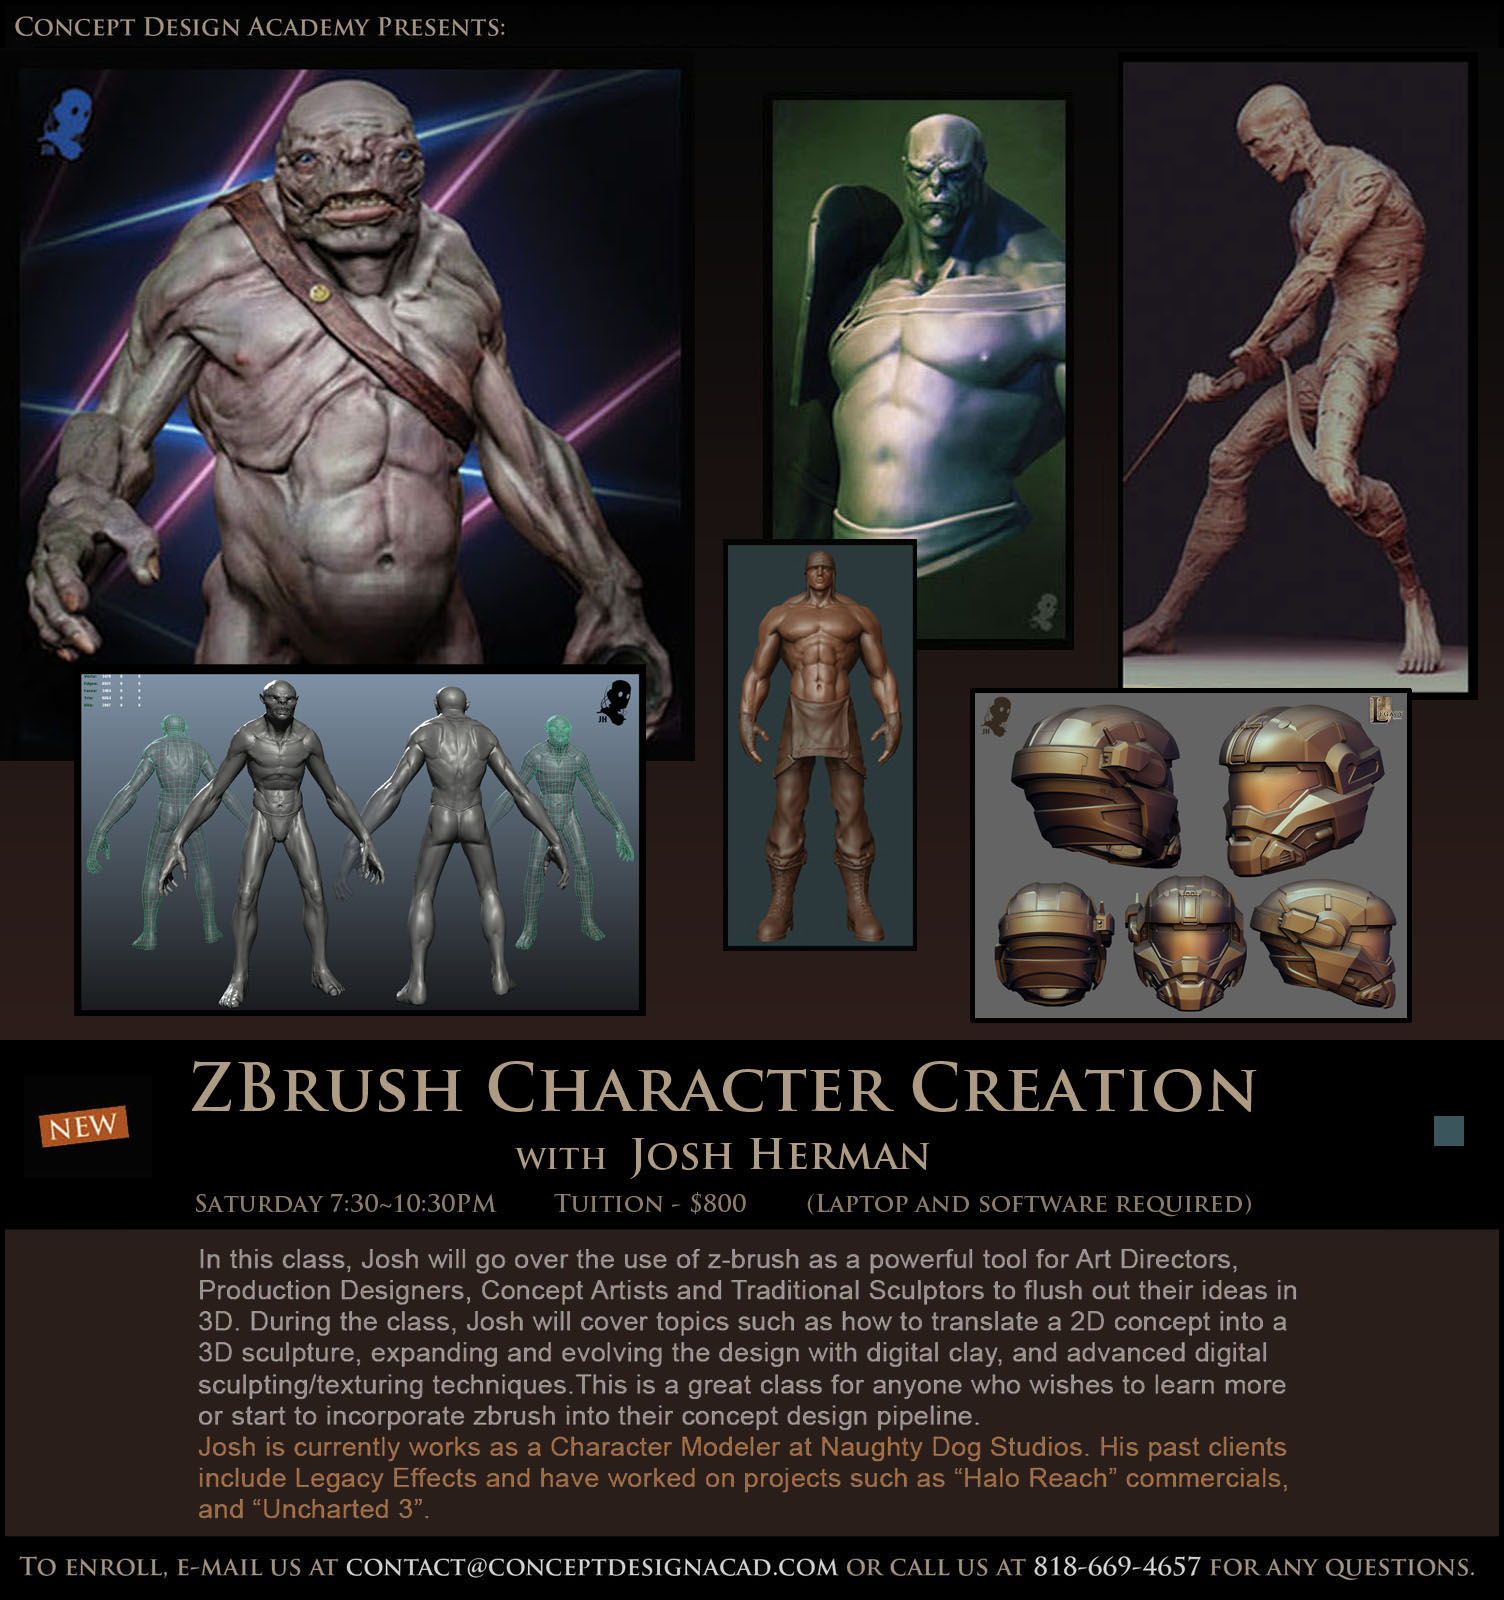 Cmivfx Zbrush Character Concept Design : Concept design academy quot zbrush character creation with